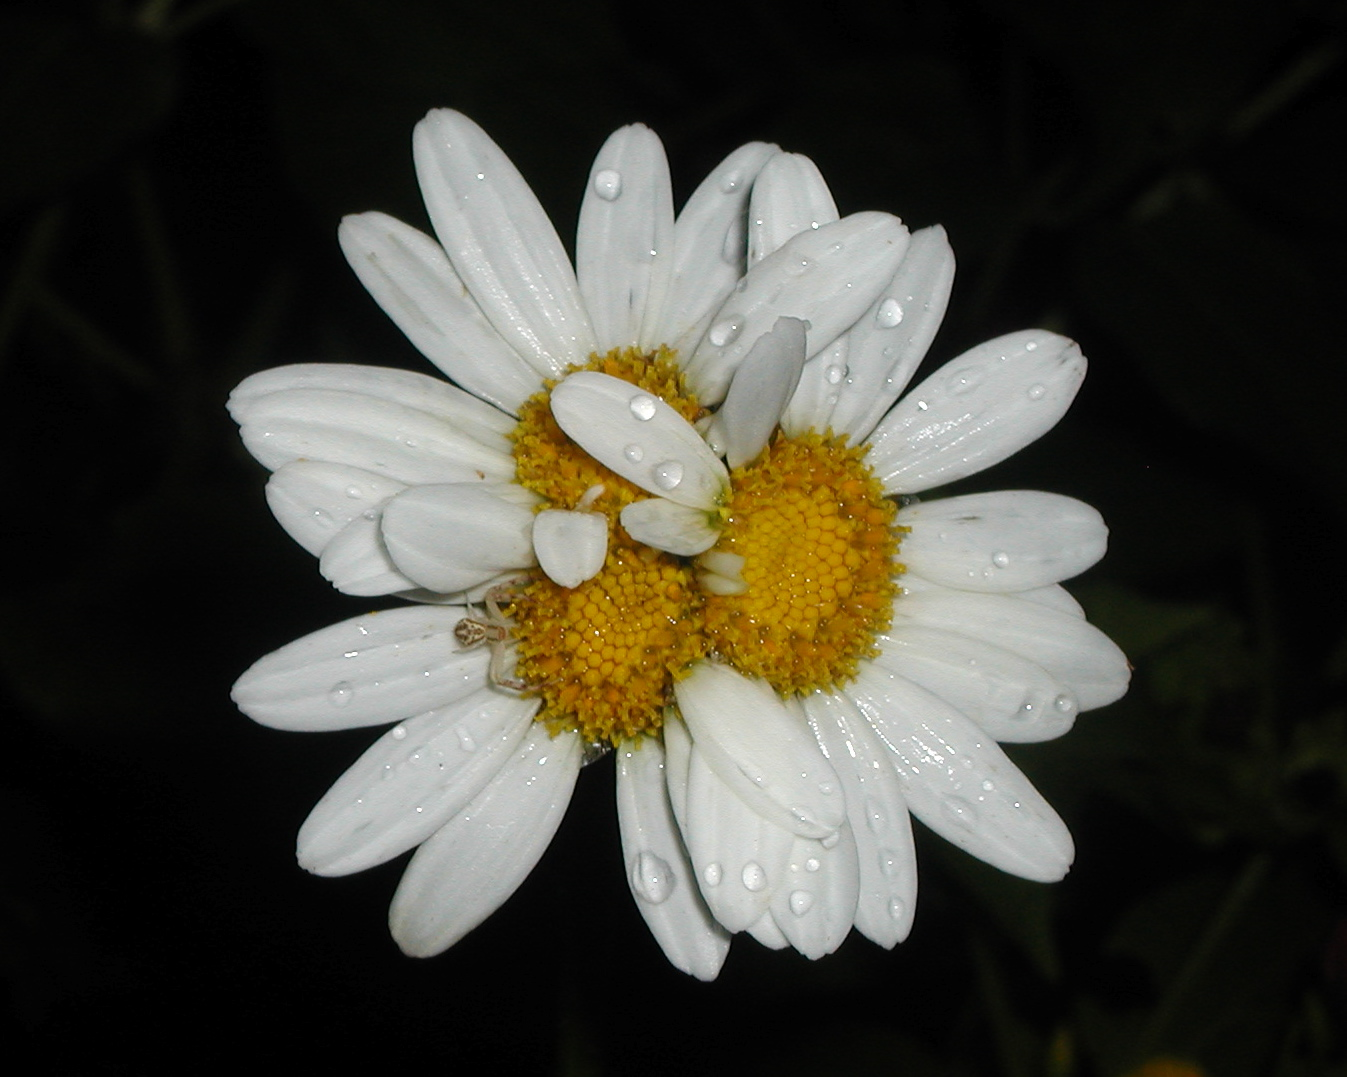 Bittersweet farms siamesedouble headed shasta daisy i had noticed one clump of shasta daisies has been exhibiting siamese or double headed flowers as i was walking through my gardens after a late afternoon izmirmasajfo Image collections